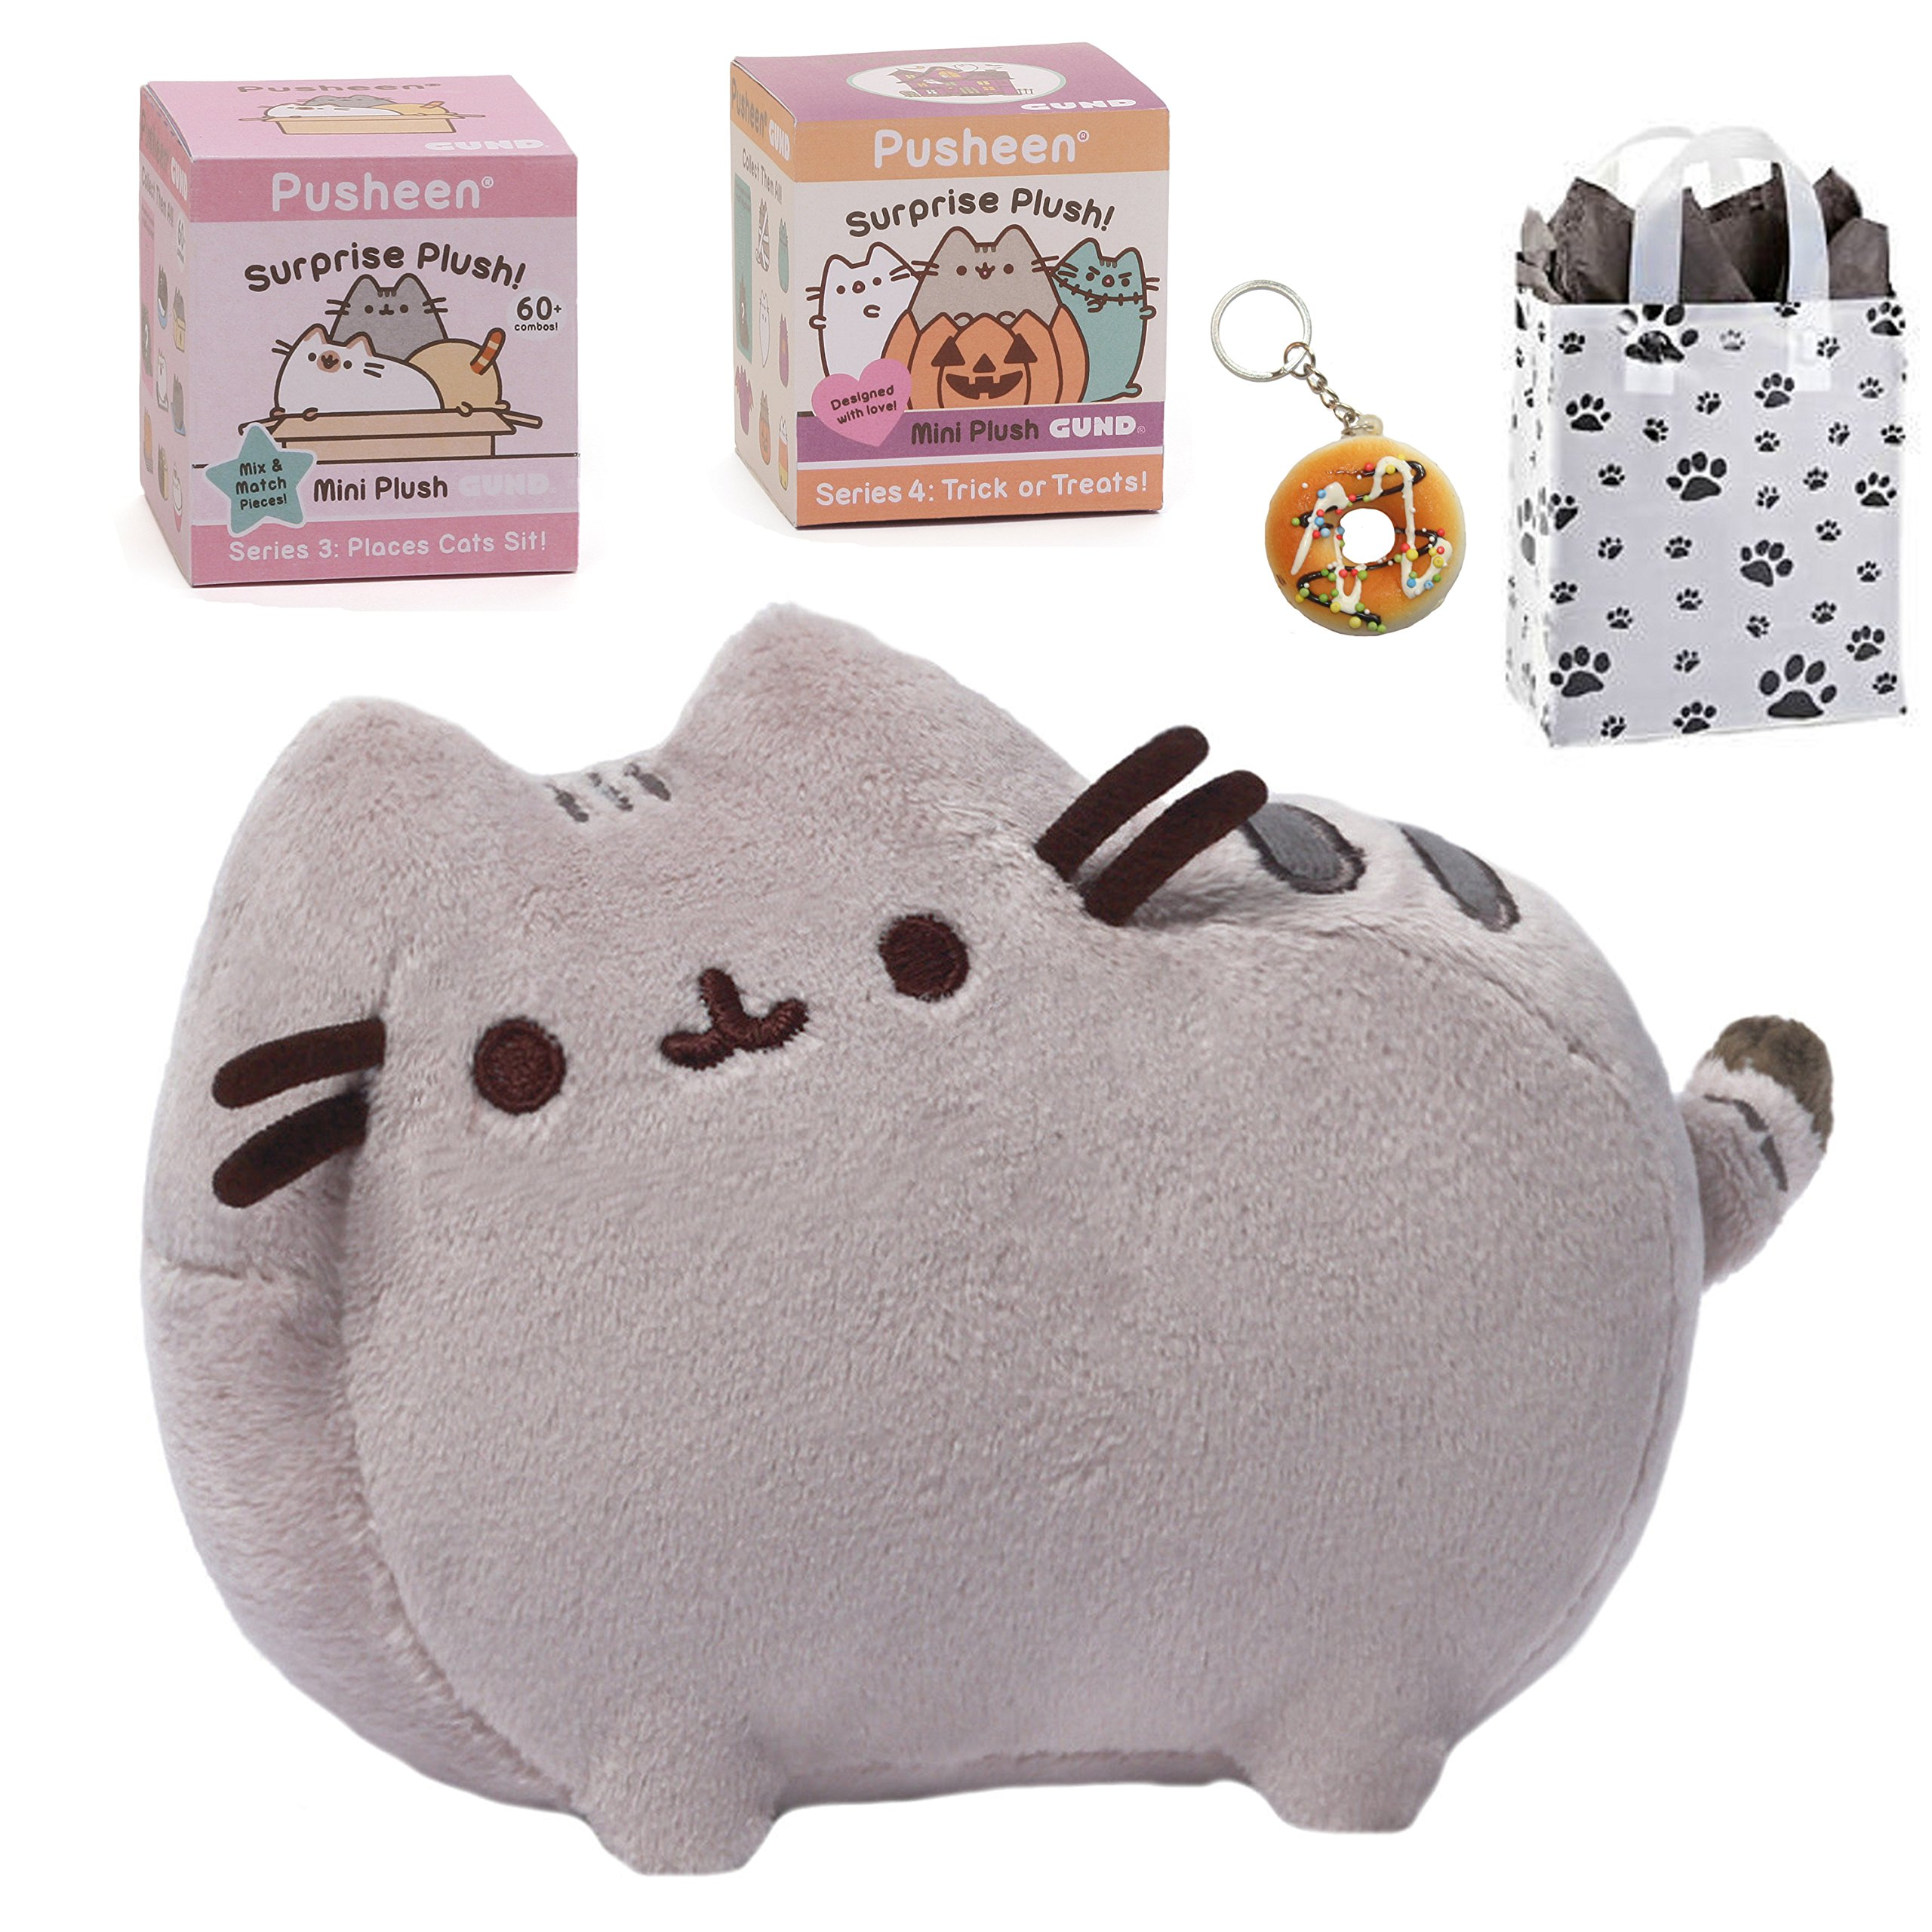 Pusheen GUND 6'' Plush, Mystery Box Series 3 & 4, Keychain & Bag Multi-pack